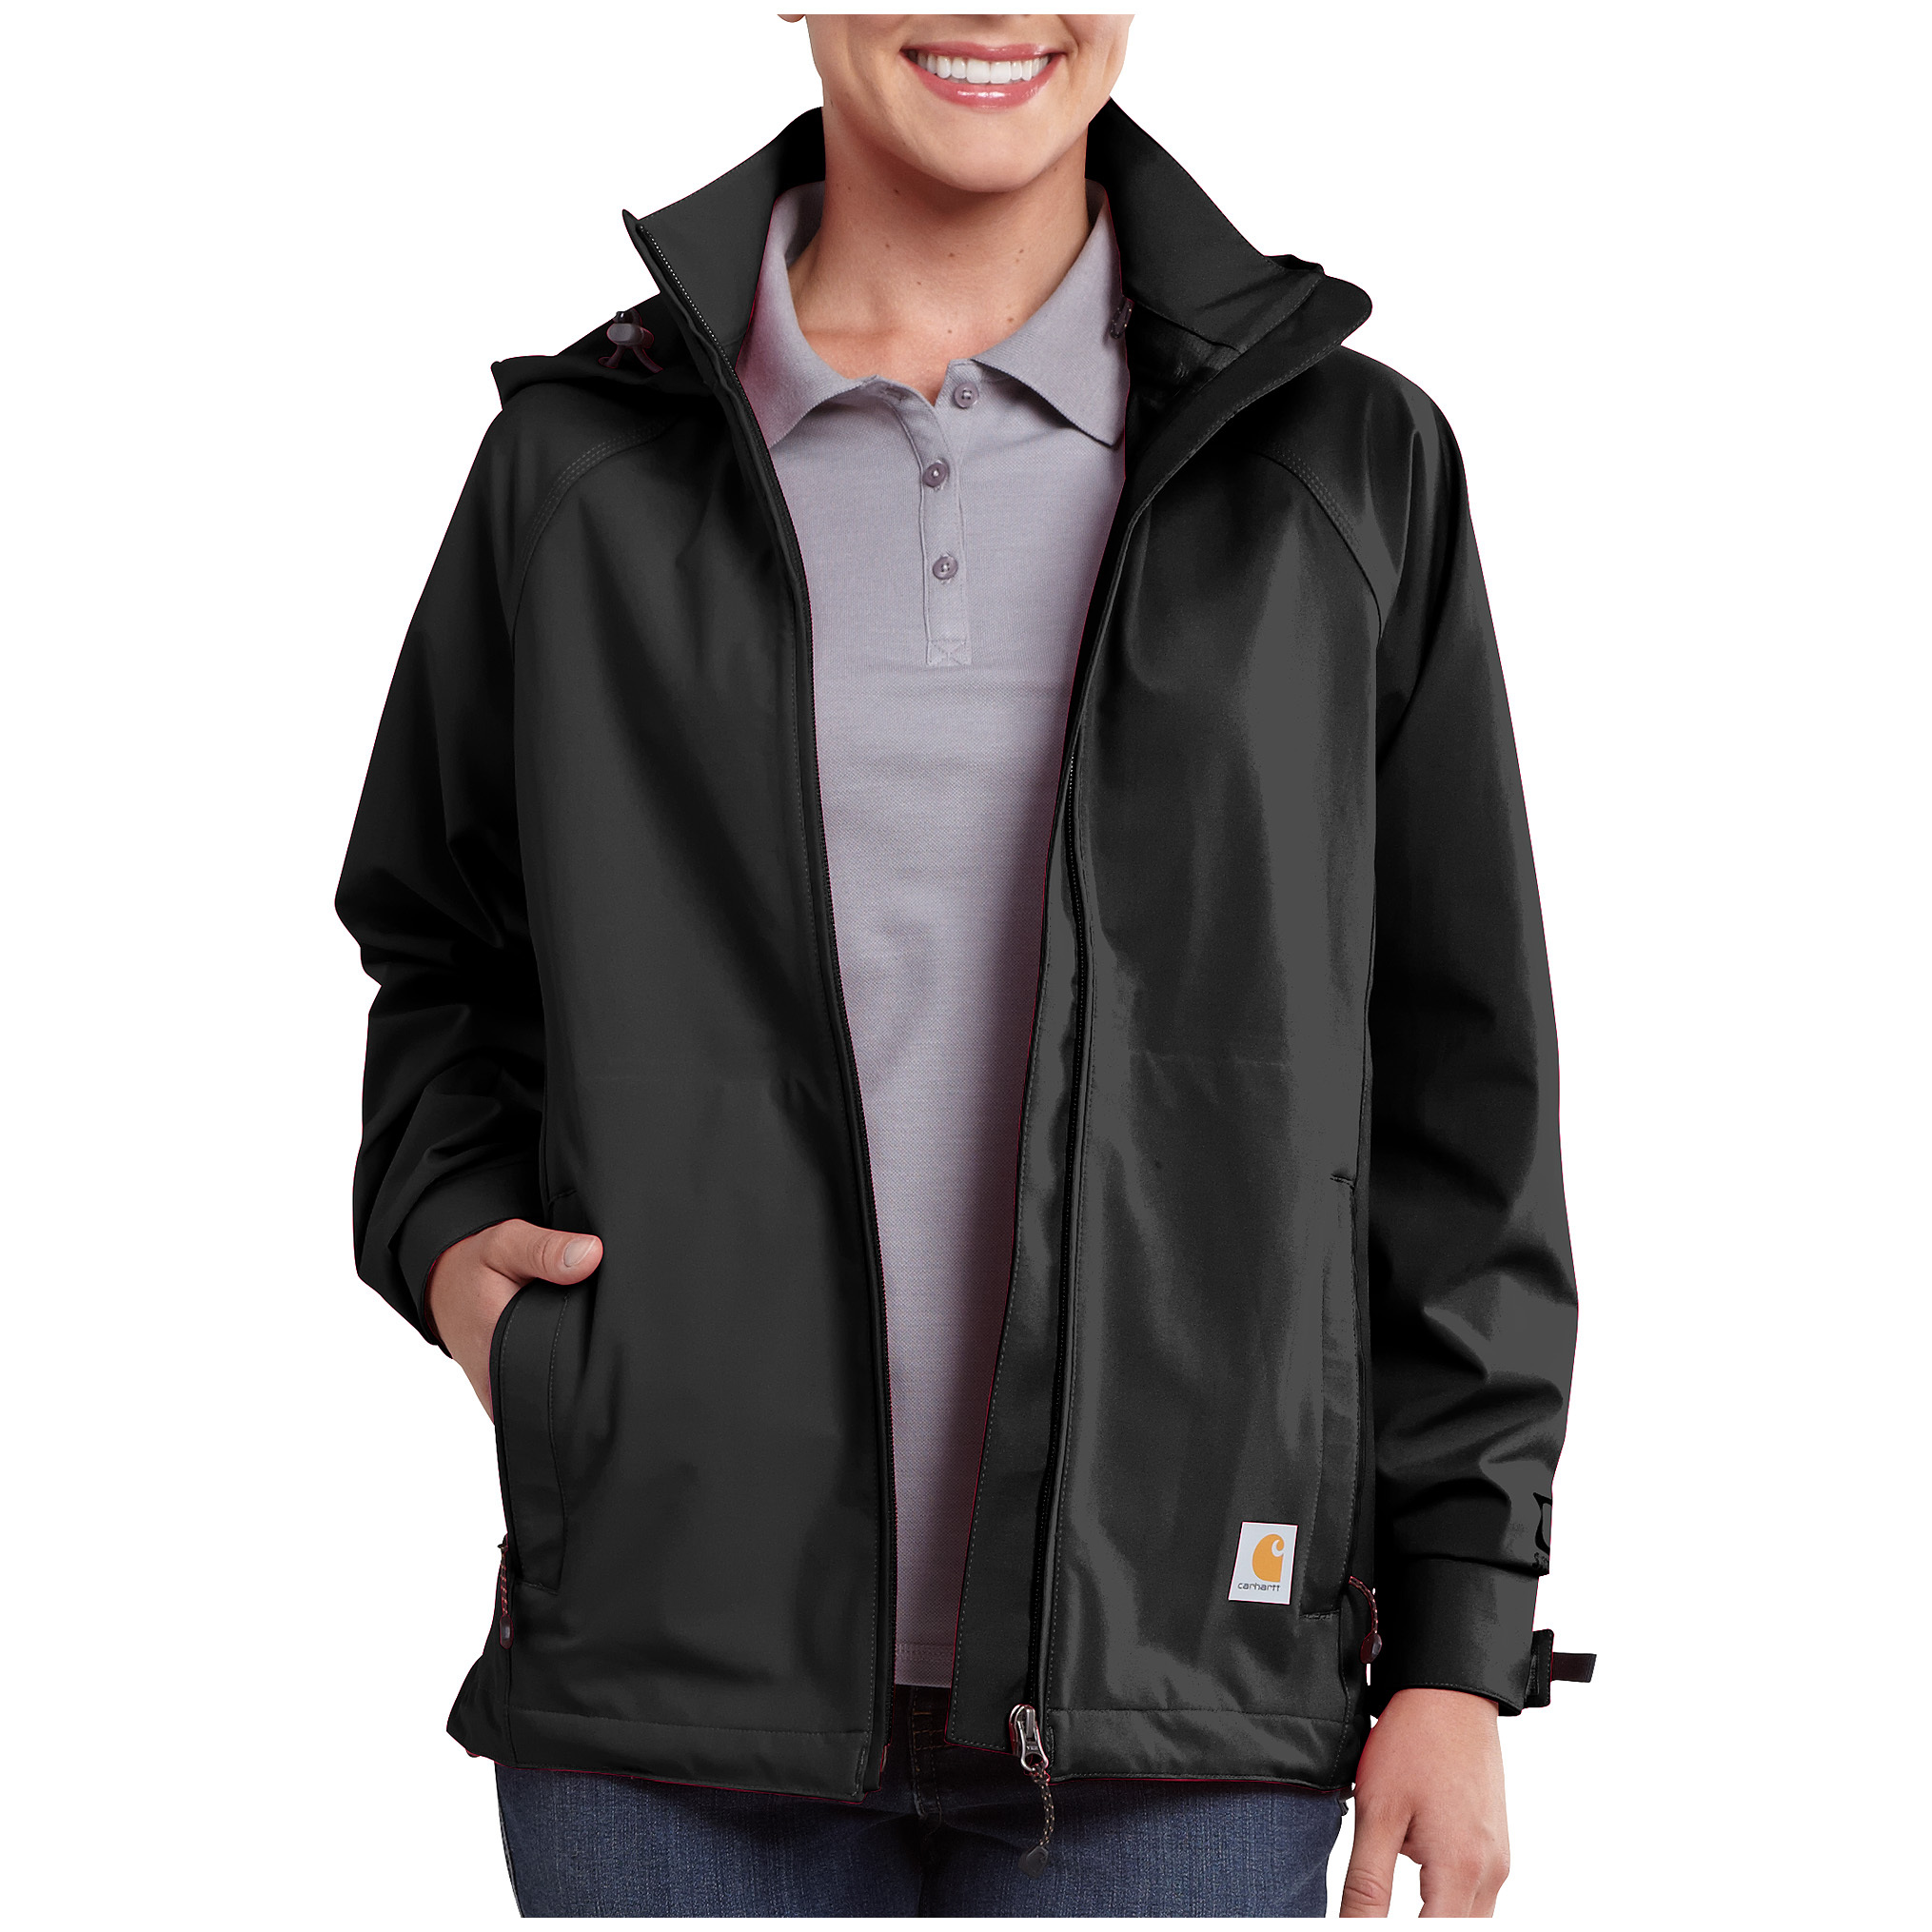 Women's Carhartt Force Equator WATERPROOF Jacket. A Force to be reckoned with. Waterproof and breathable, this Jacket wicks away sweat and fights odors thanks to Force technology. 4-way stretch fabric makes moving around easy.5-oz. 3-layer 100% polyester shell with Storm Defender & trade waterproof/breathable membrane and Rain Defender & trade durable water-repellent finish Polyester mesh interior with FastDry & trade technology that wicks away moisture for comfort Attached 3-pc. hood with drawcord and barrel locks Odor-fighting Force technology keeps you and Jacket fresh Fully-taped waterproof seams 2 zipper hand pockets Hook-and-loop adjustable cuffs Mesh vent at back yoke for added breathability Reflective trim on pockets and rear yoke for added visibility Media port Drop tail for added coverage. Imported. - $129.99